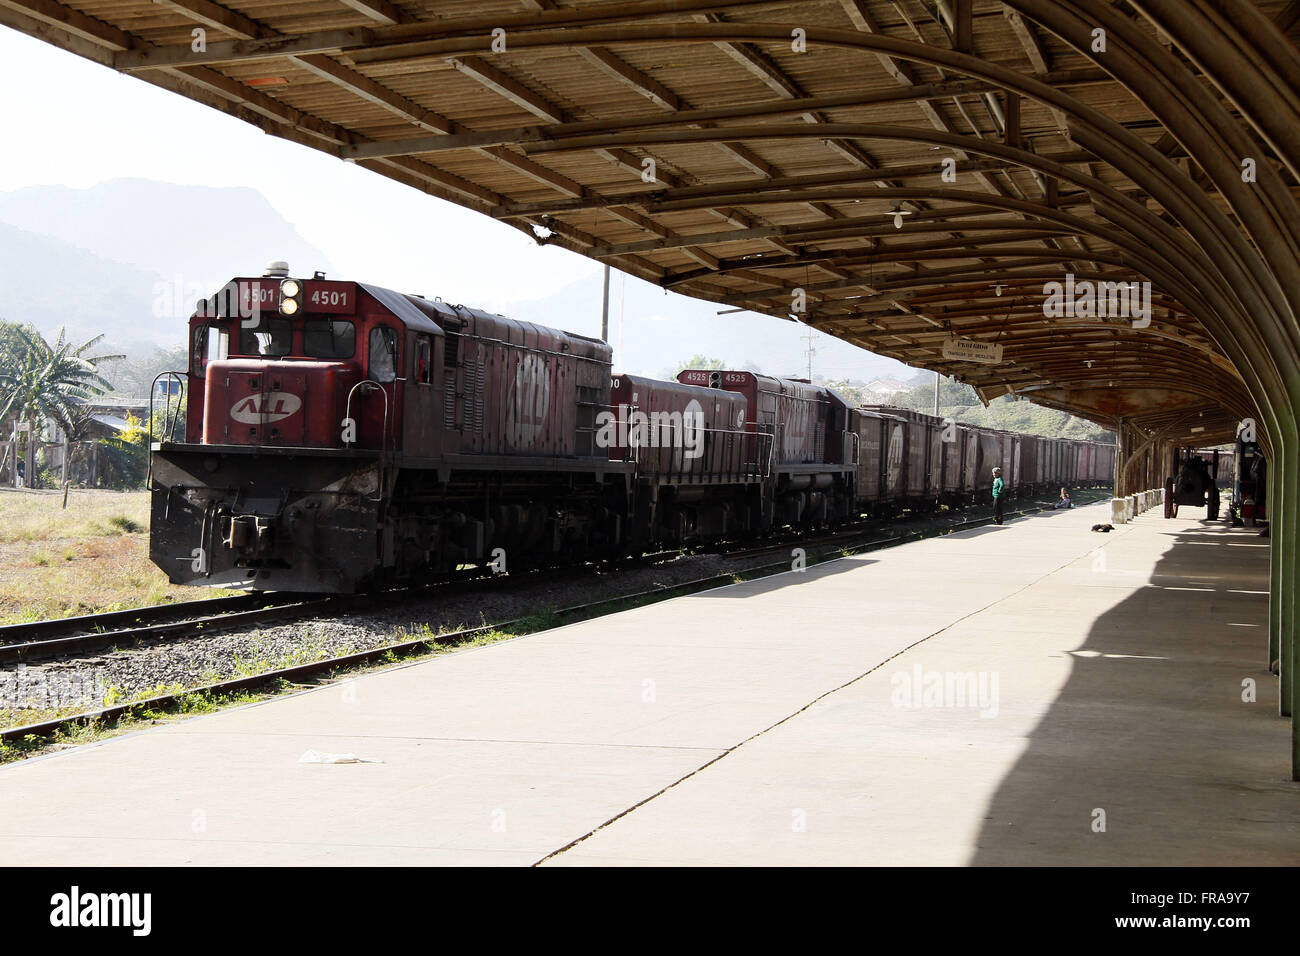 Two locomotives pulling freight train wagons on railway administered by ALL - Stock Image